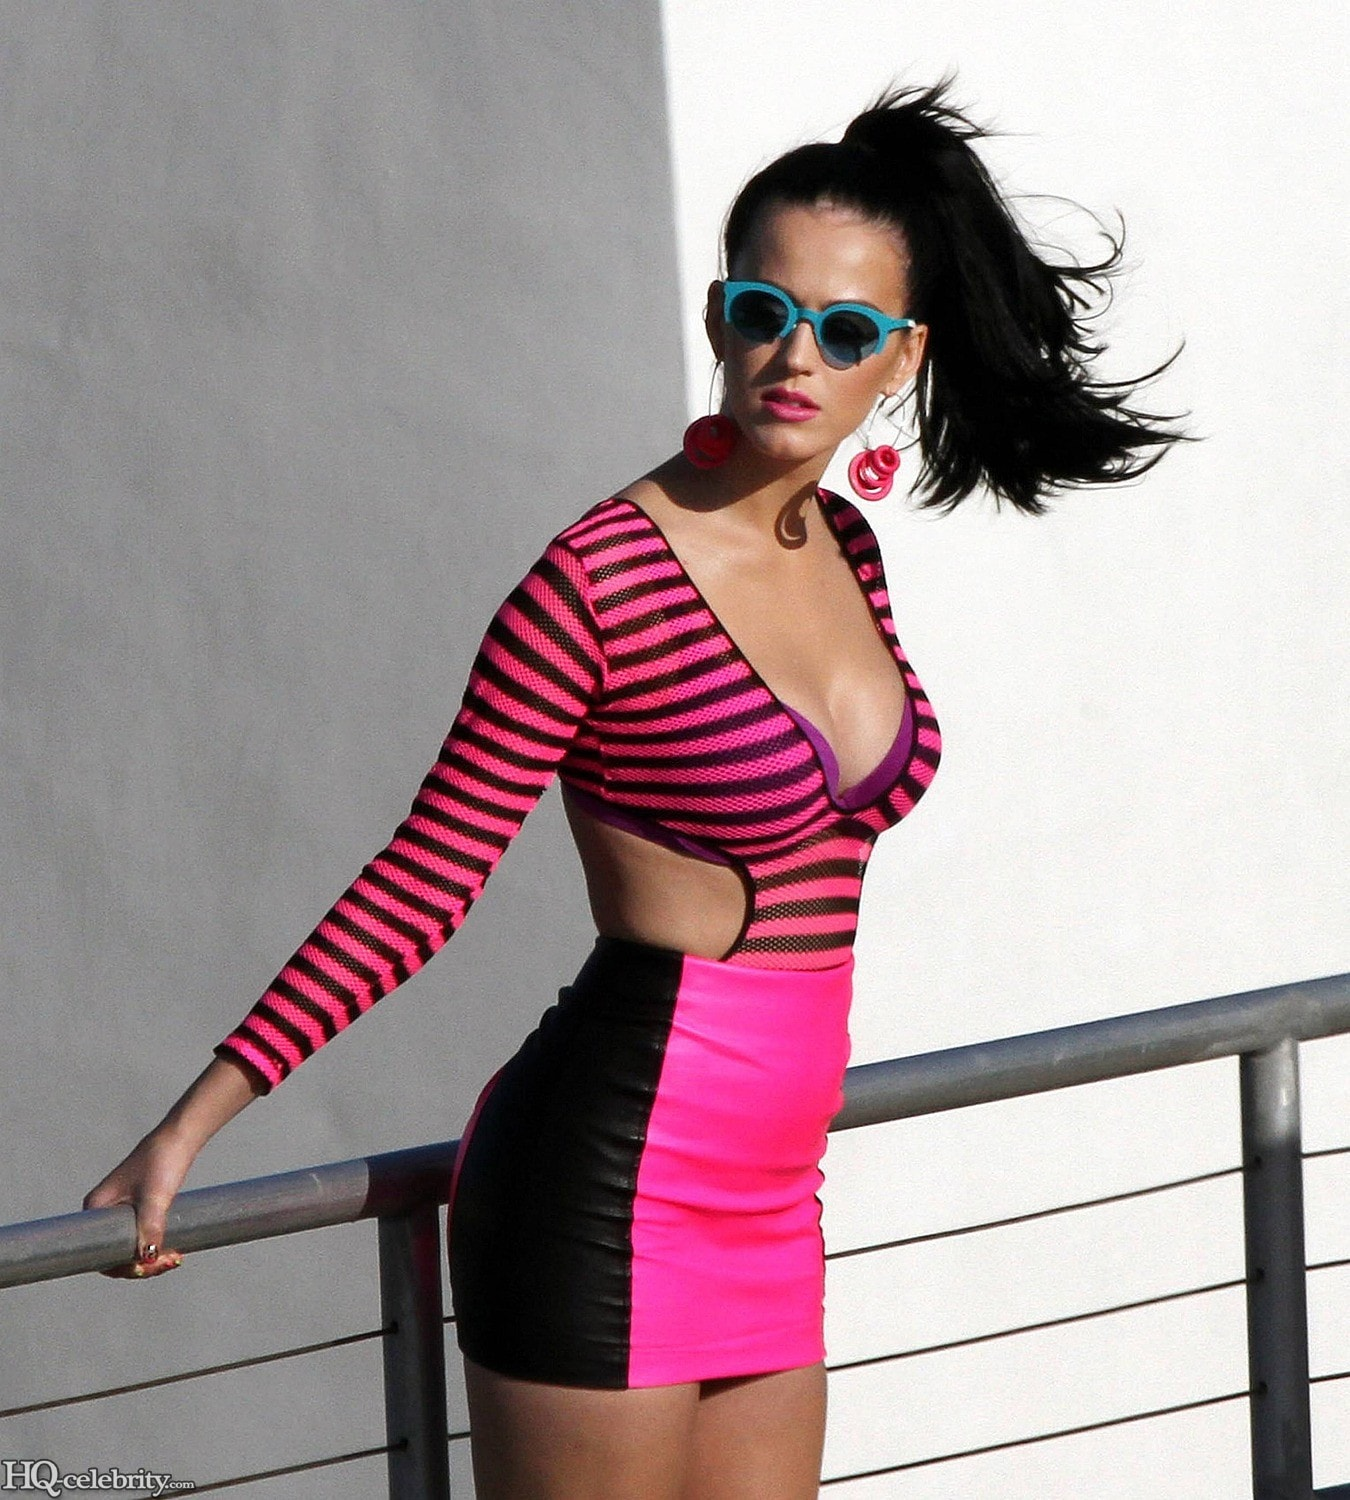 katy perry photo shoot (4)-min